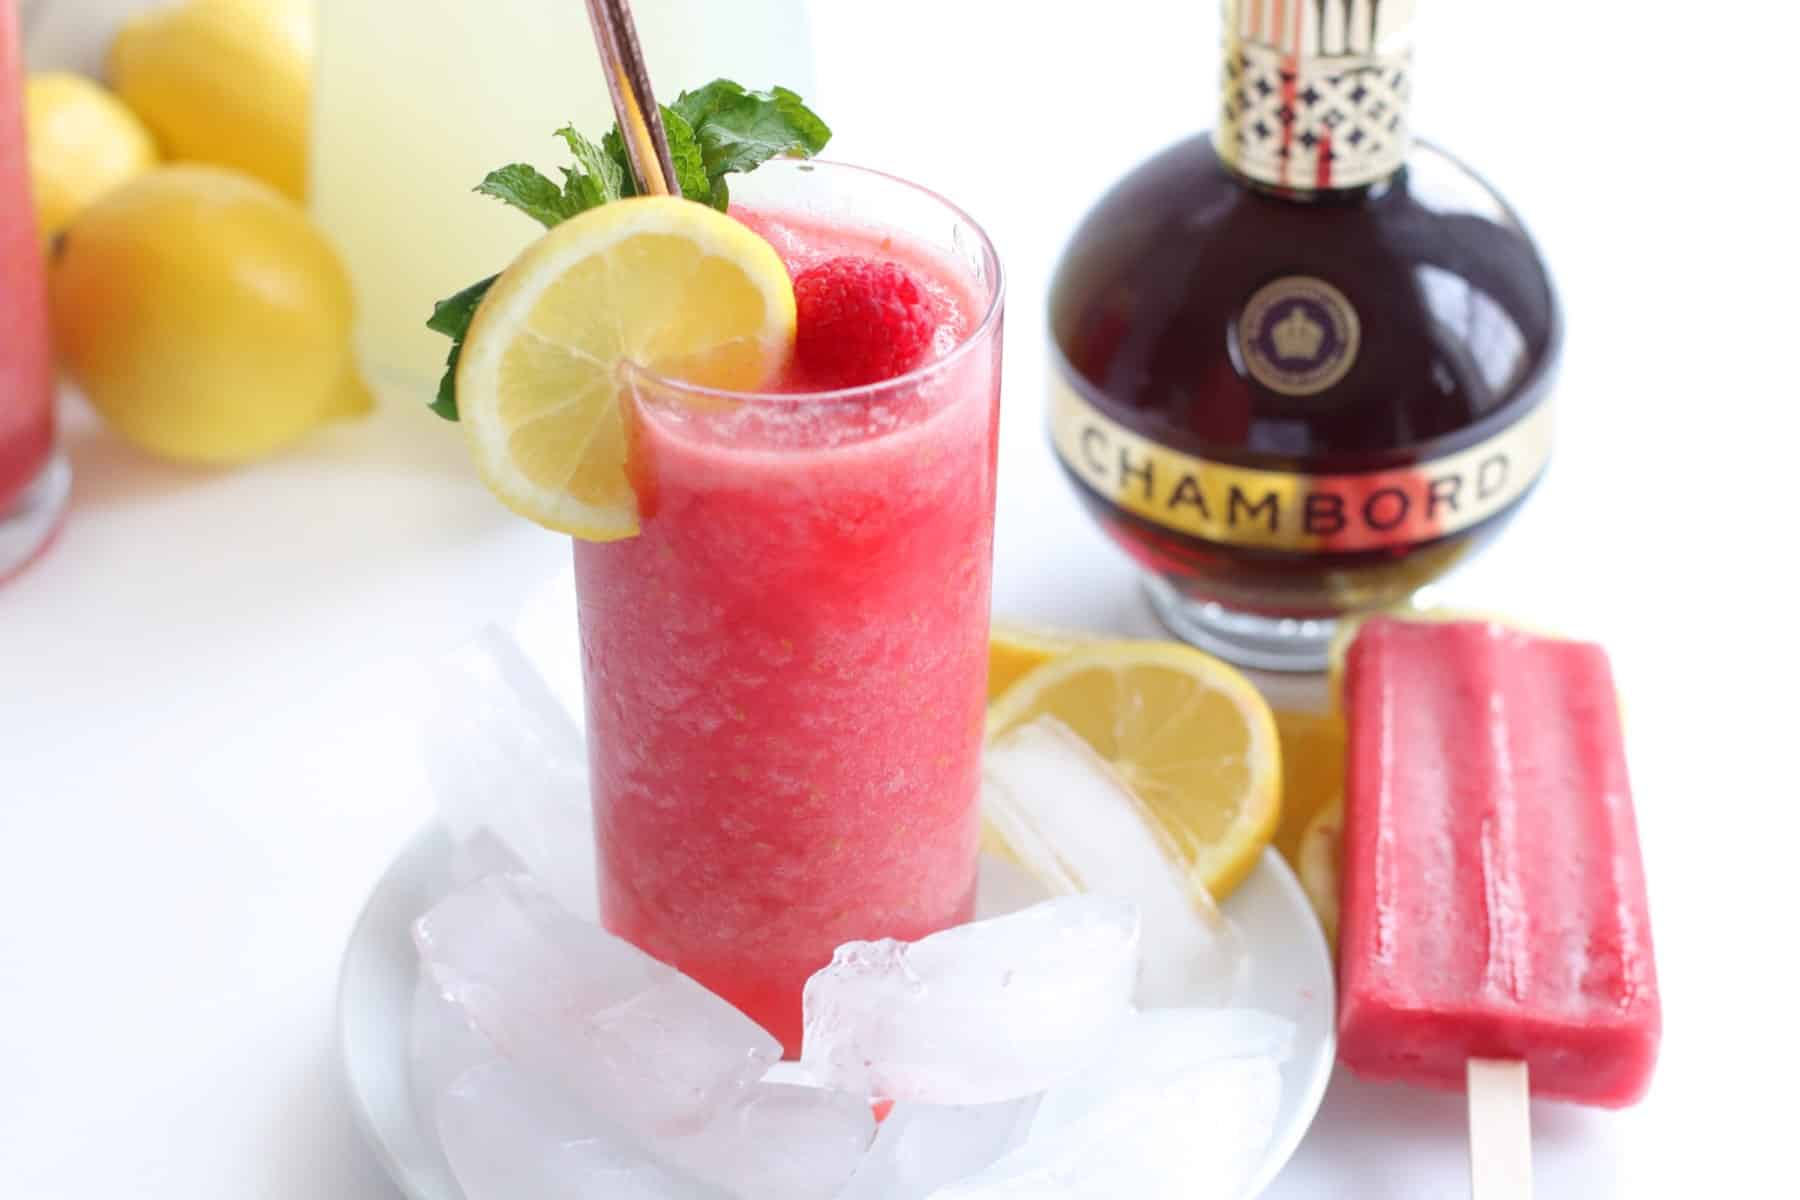 Showing a frozen lemonade in a tall glass with a bottle of Chambord and a raspberry popsicle